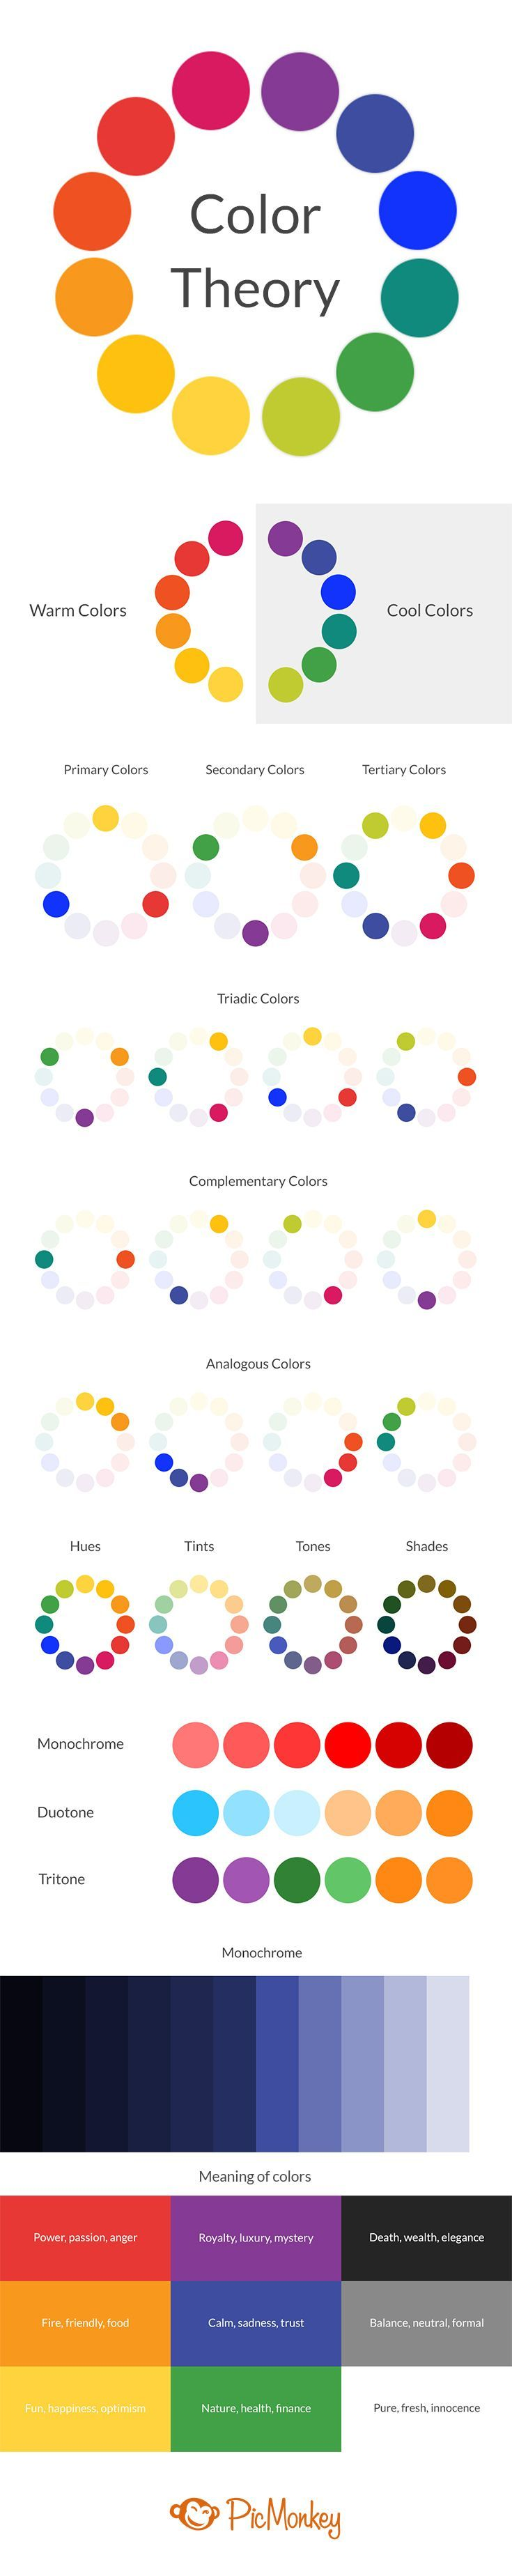 This Is An Illustration Of All The Different Types Colors To Be Used In Image Inkfumesblogspot 2011 10 Poster Designs Color Des